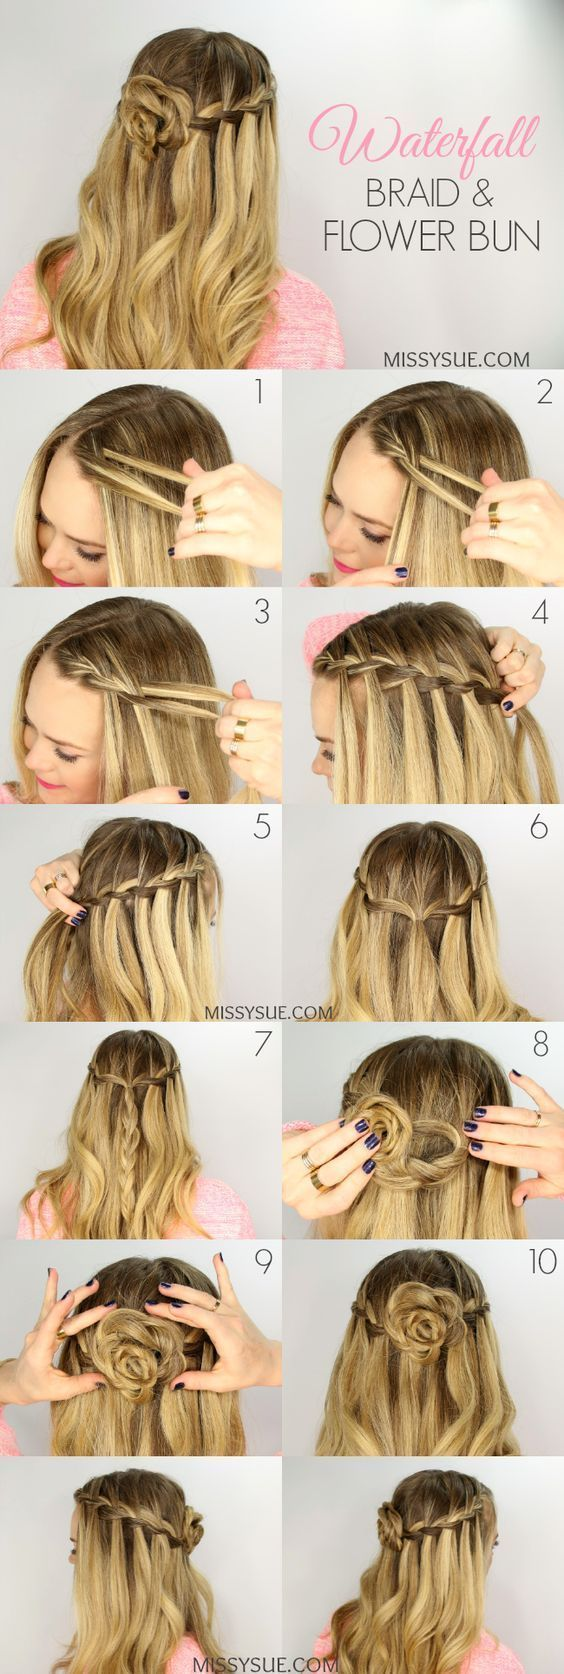 25 Great Braided Hairstyles Worth Mastering - Page 2 of 3 - Trend To Wear...                                                                                                                                                                                 More